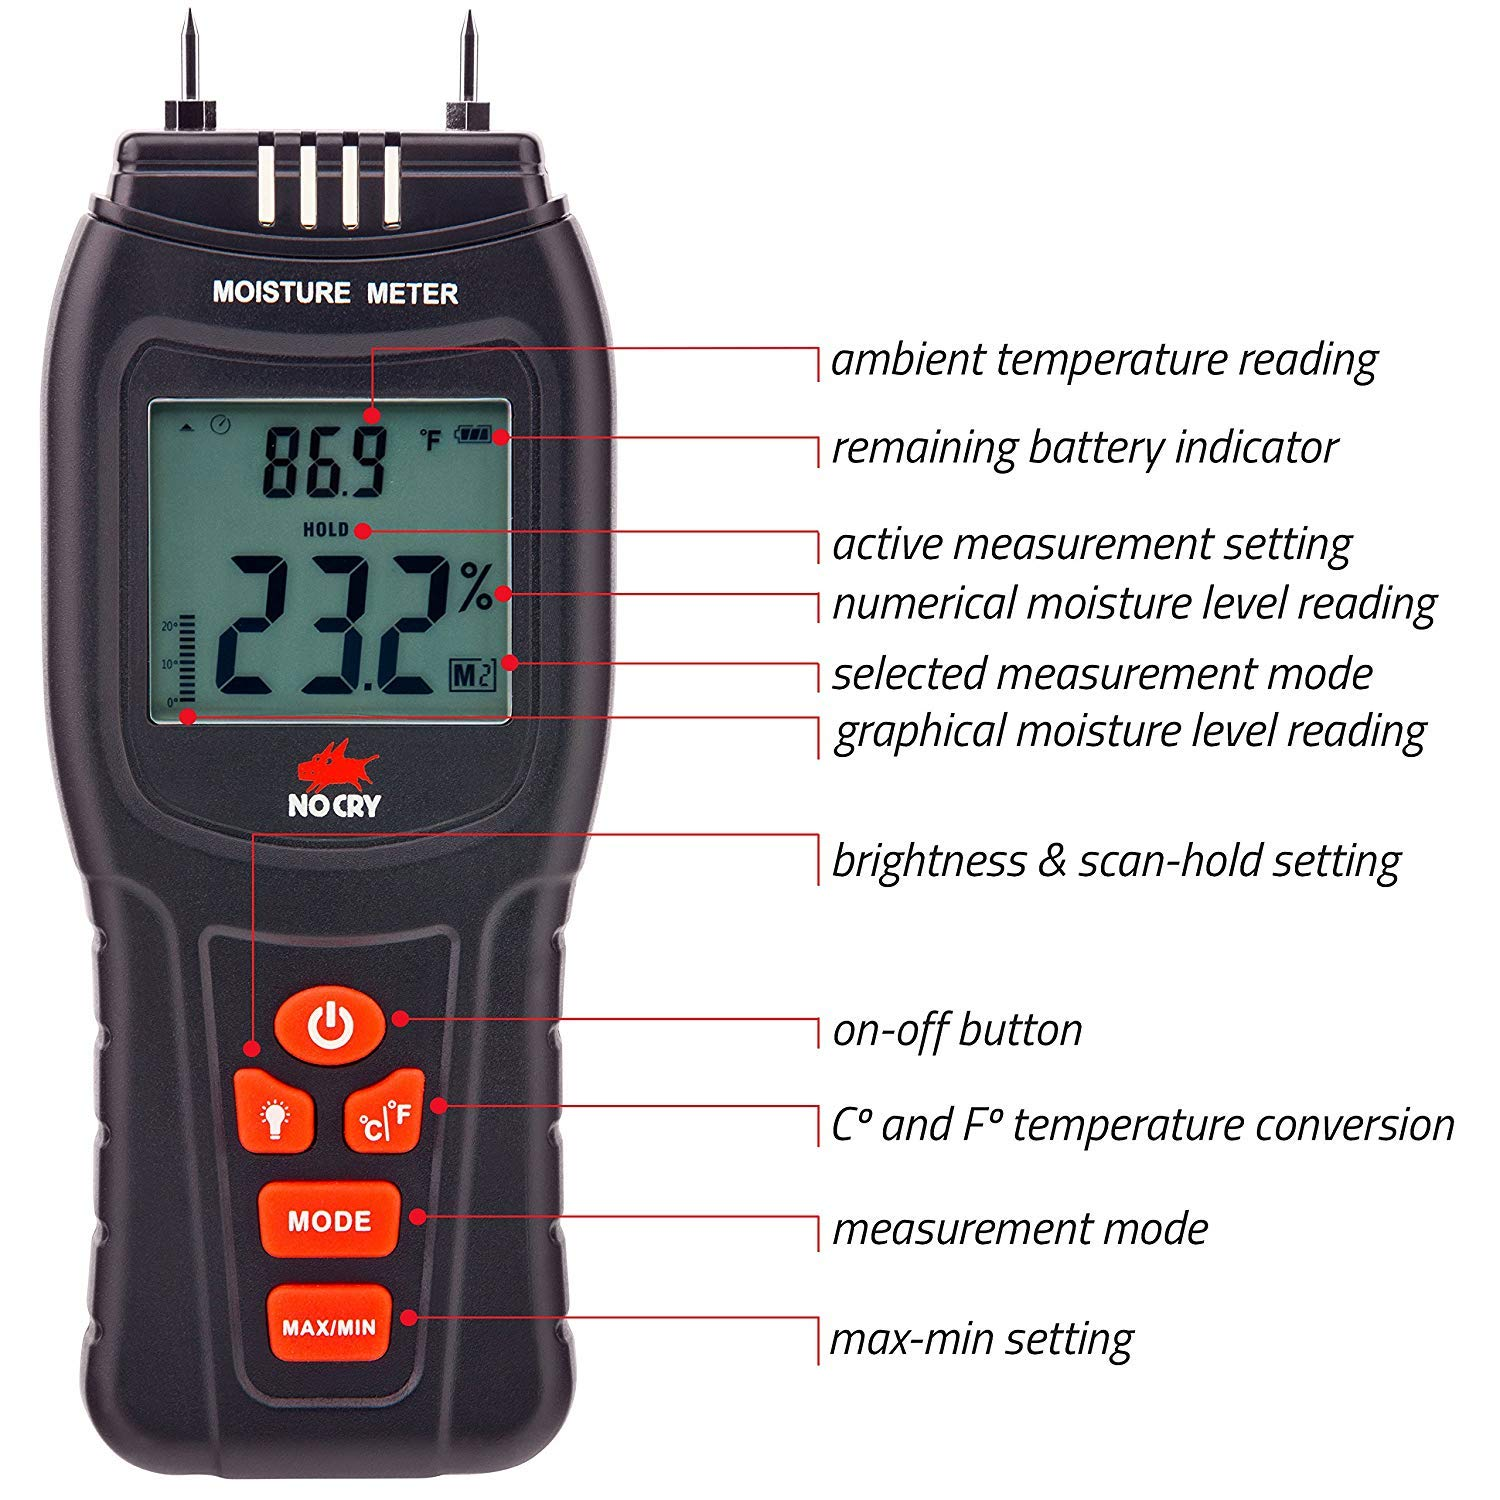 NoCry Digital Moisture Meter - Water Leak Detector and Thermometer for Wood & Building Materials, Battery and Replacement Electronic Probes Included by NoCry (Image #7)